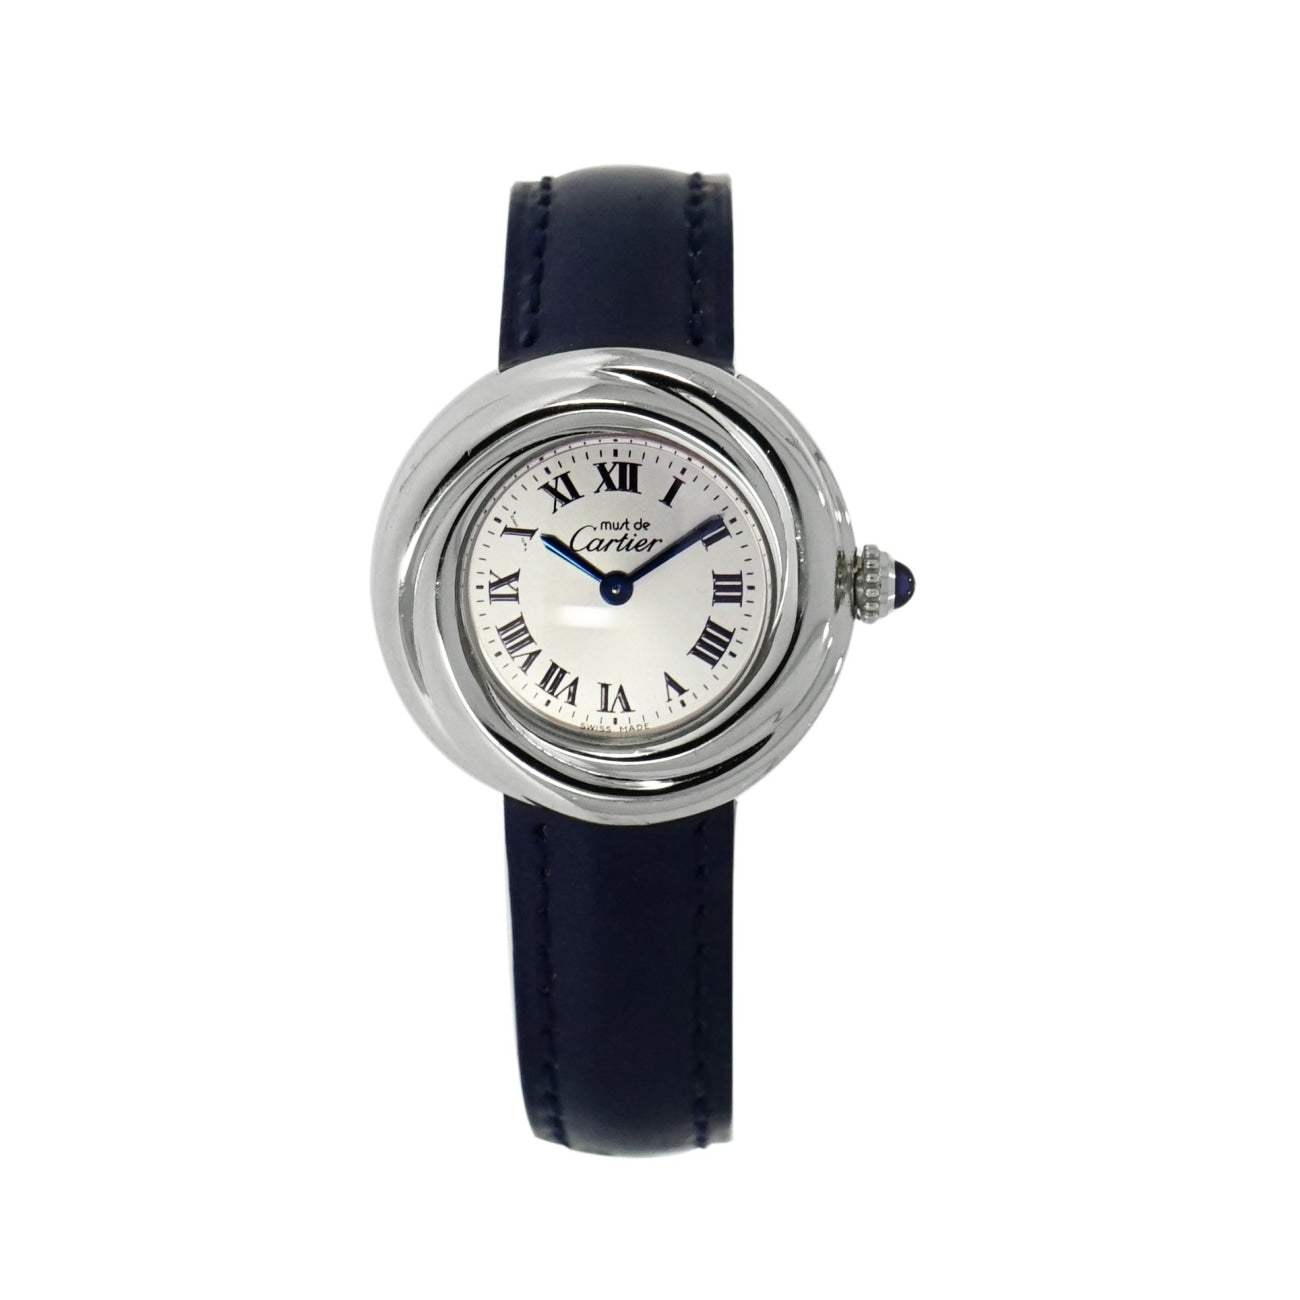 Pre-Owned Cartier Watches - Cartier Must de Cartier Sterling Silver | Manfredi Jewels